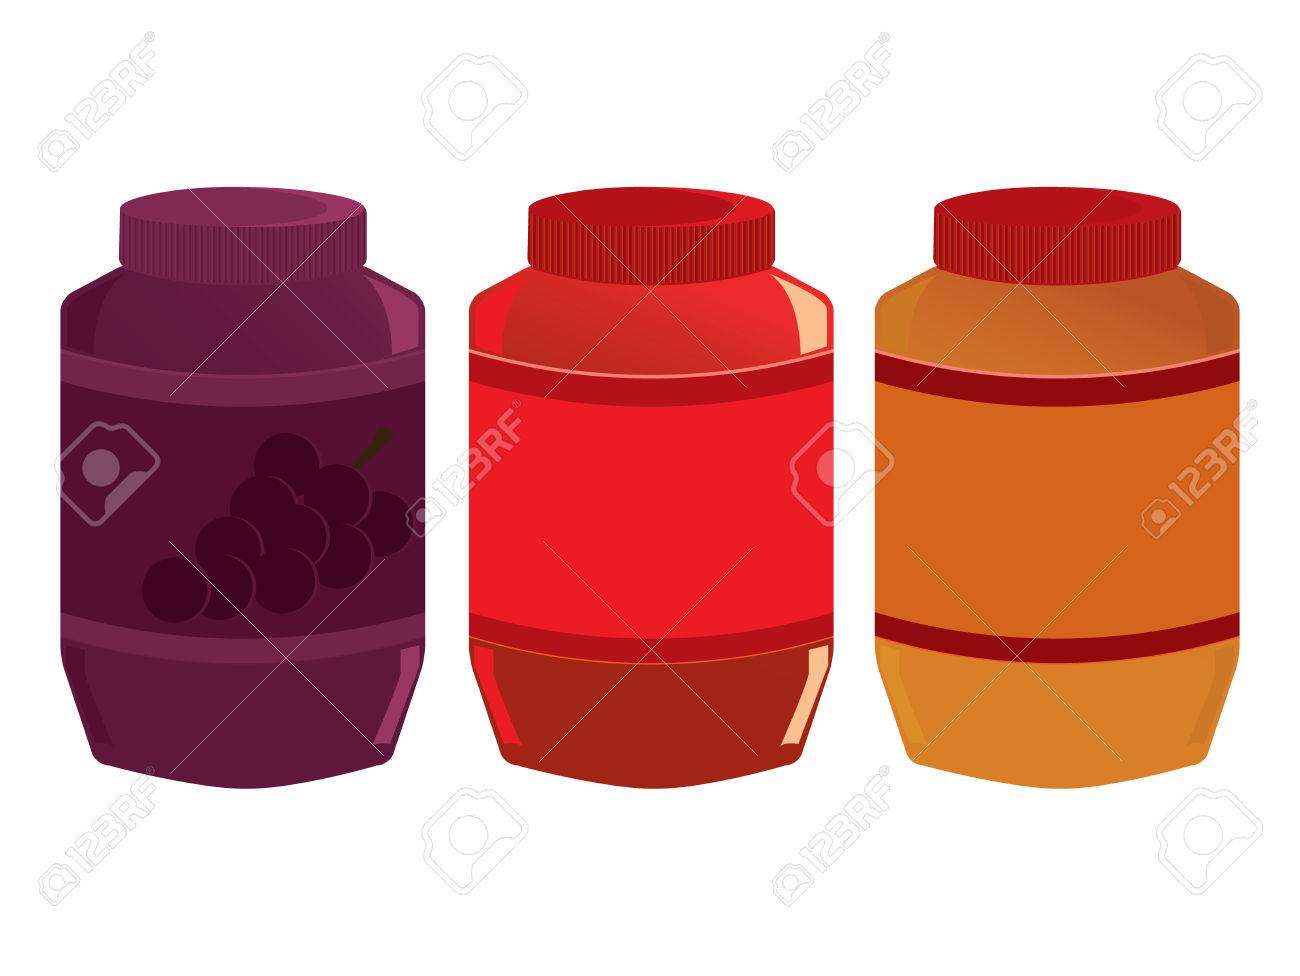 Jars of peanut butter and jelly isolated on a white background Stock Vector - 6468223